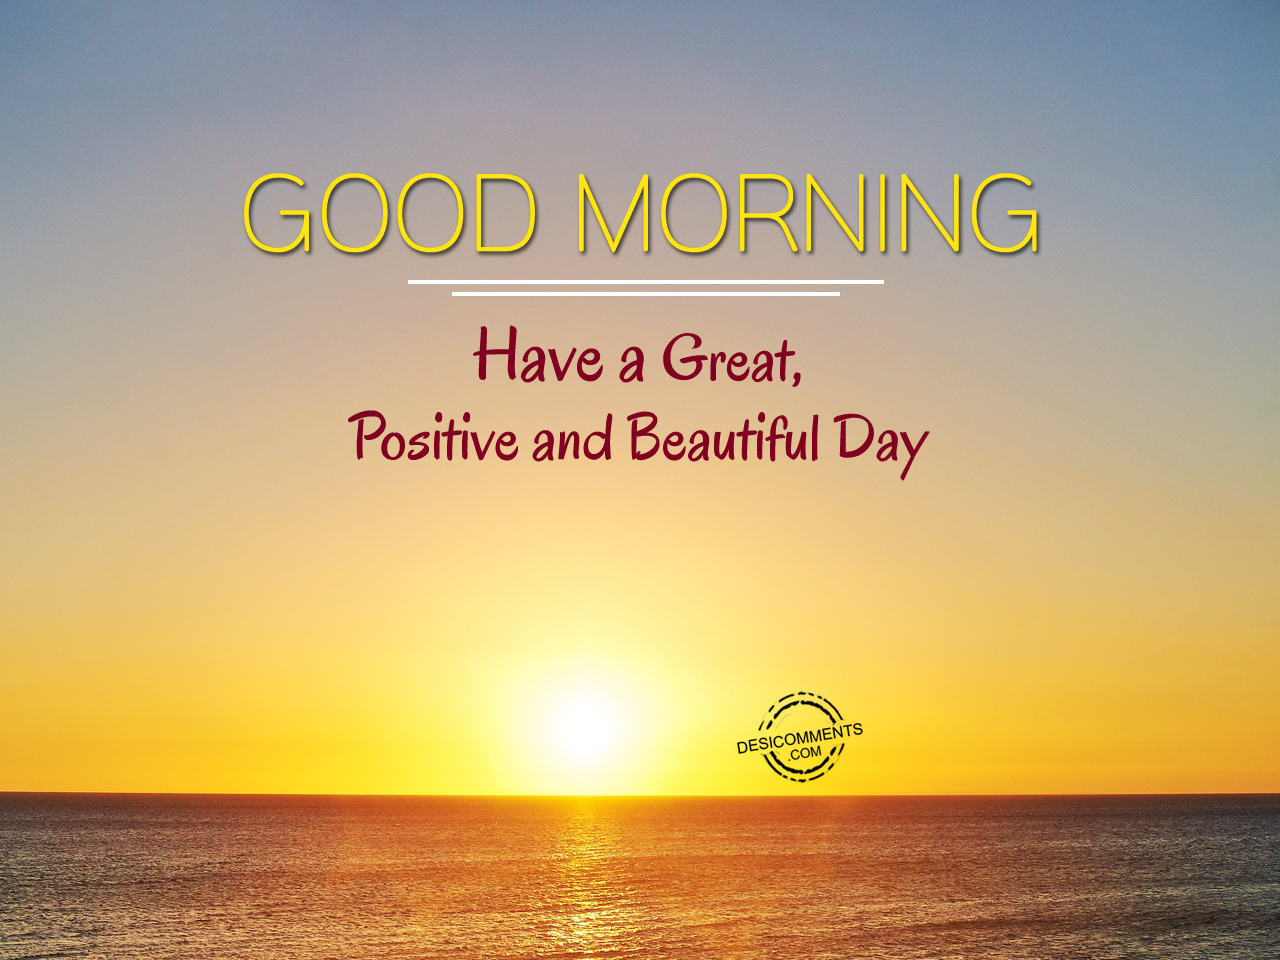 Good Morning Beautiful Have A Good Day : Have a great postive and beautiful day good morning